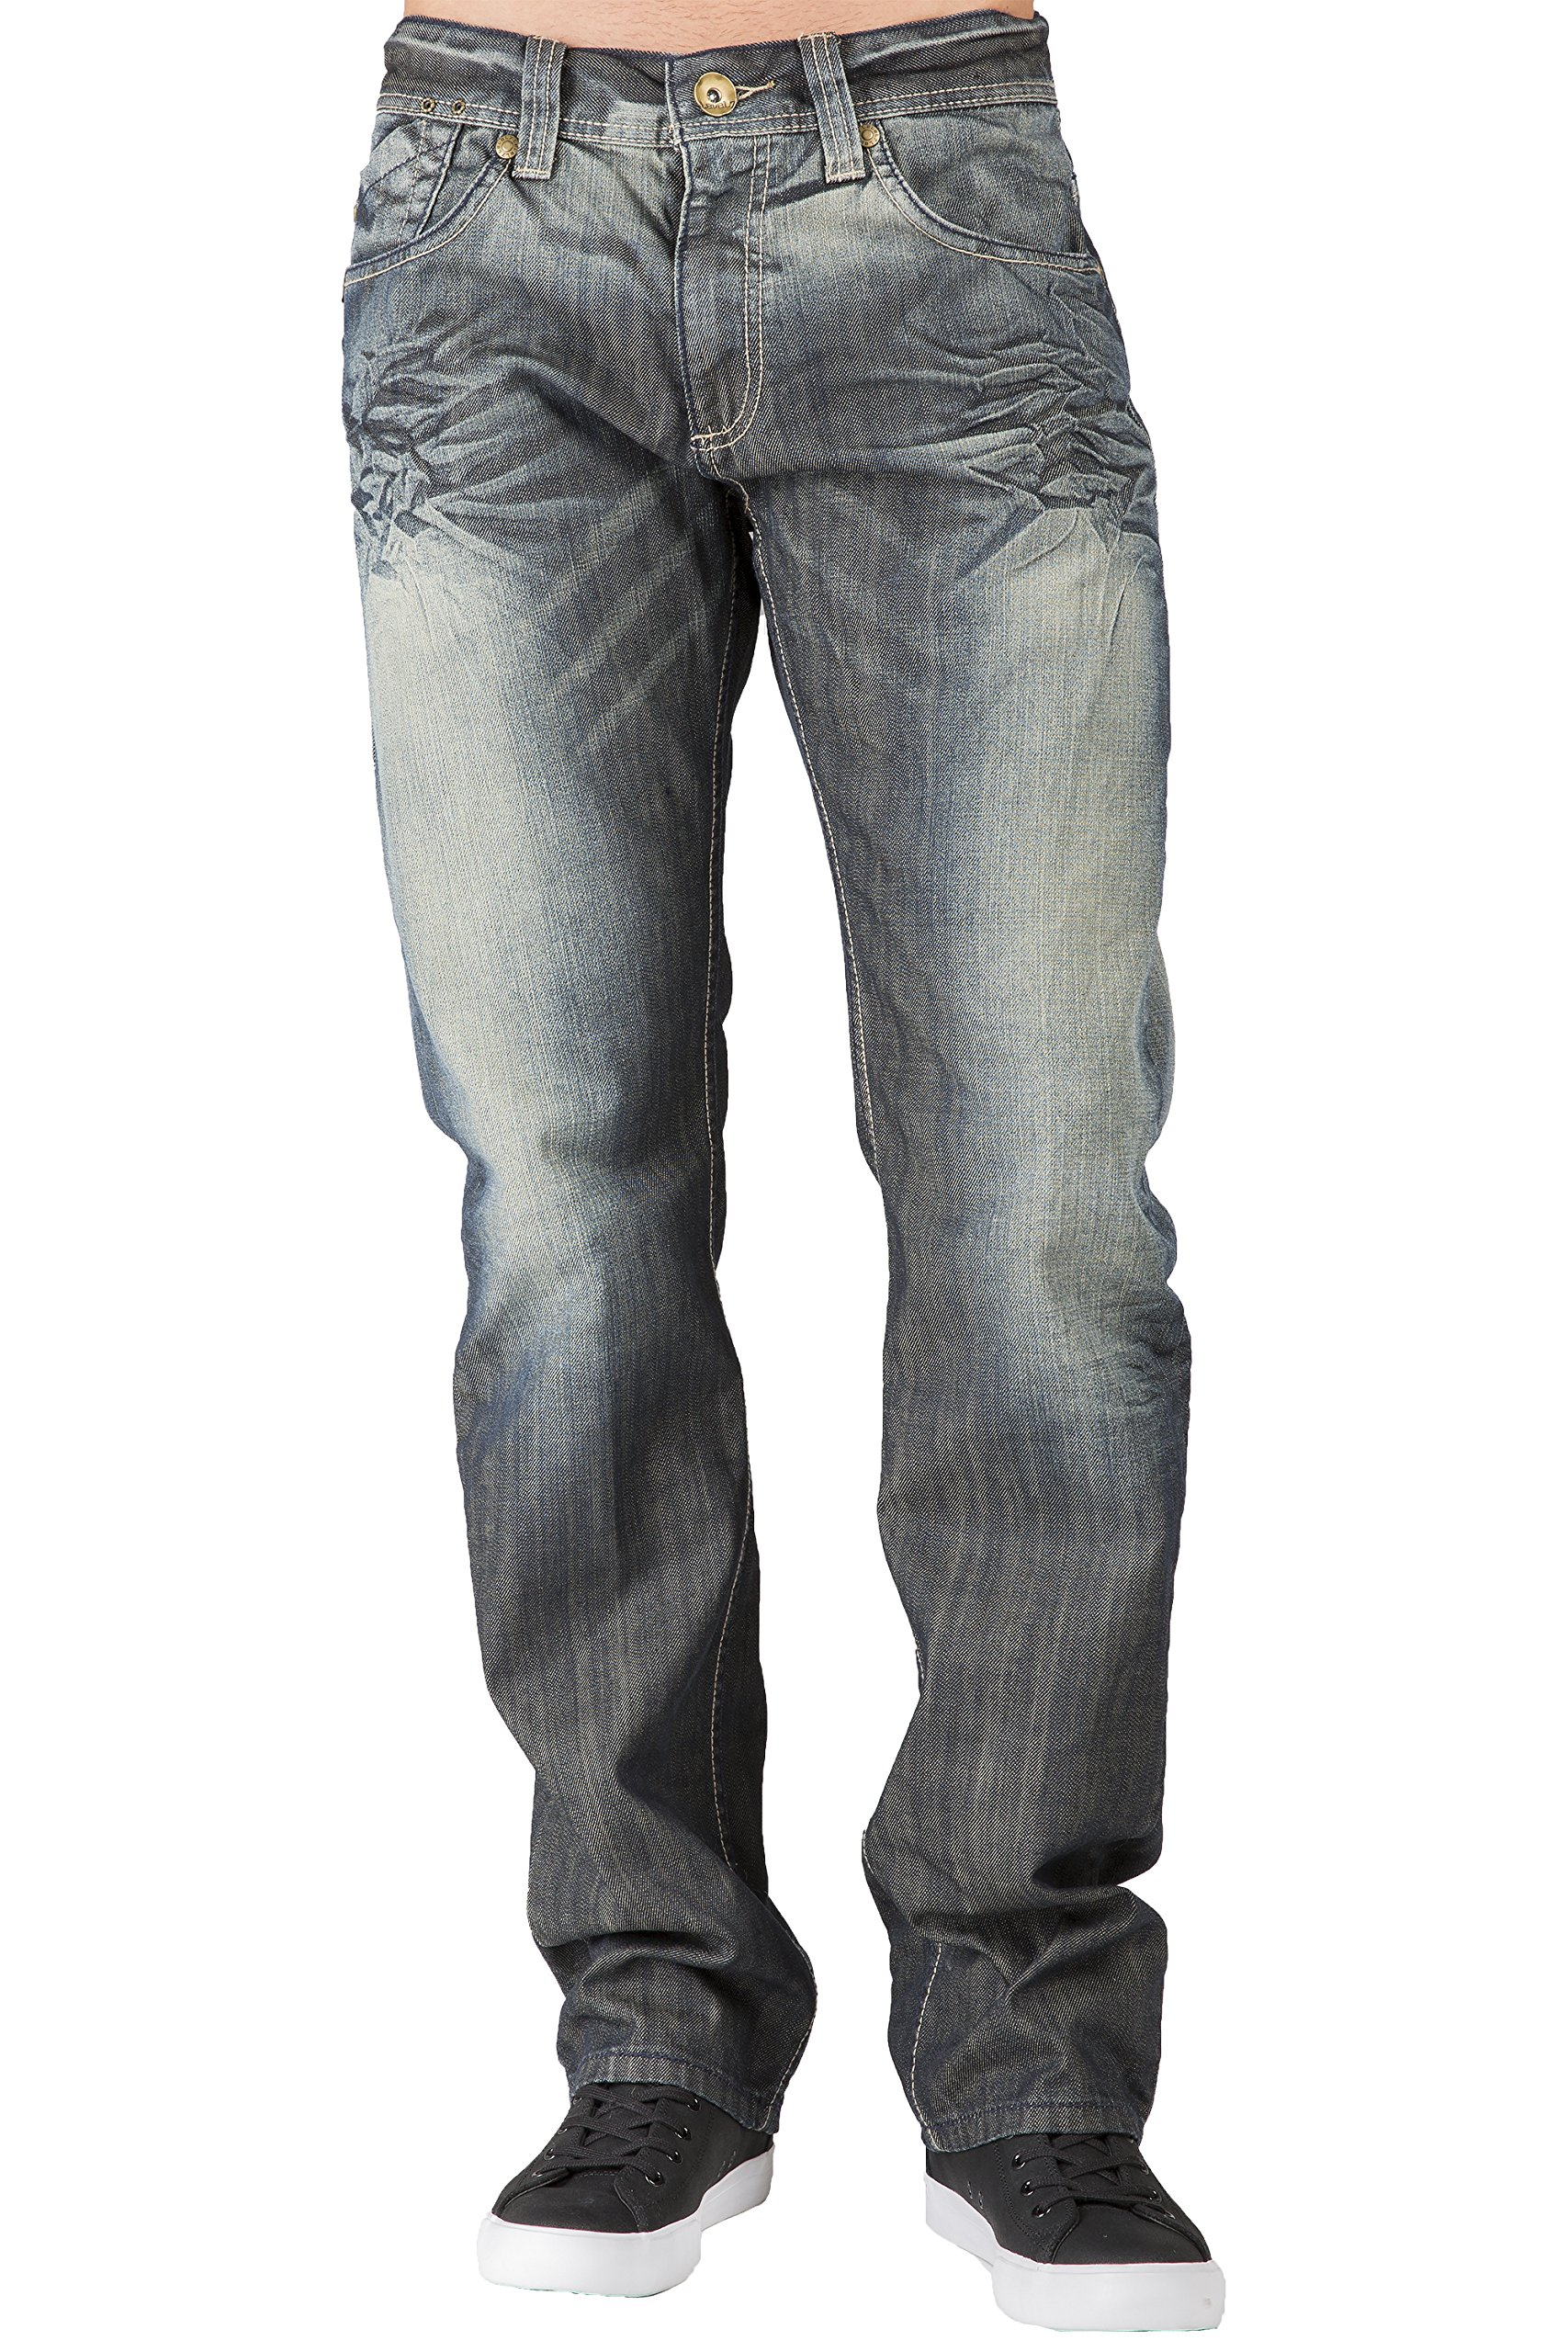 Level 7 Men's Relaxed Straight Leg Dark Tint Premium Denim Jeans Wrinkle Whiskering Size 38